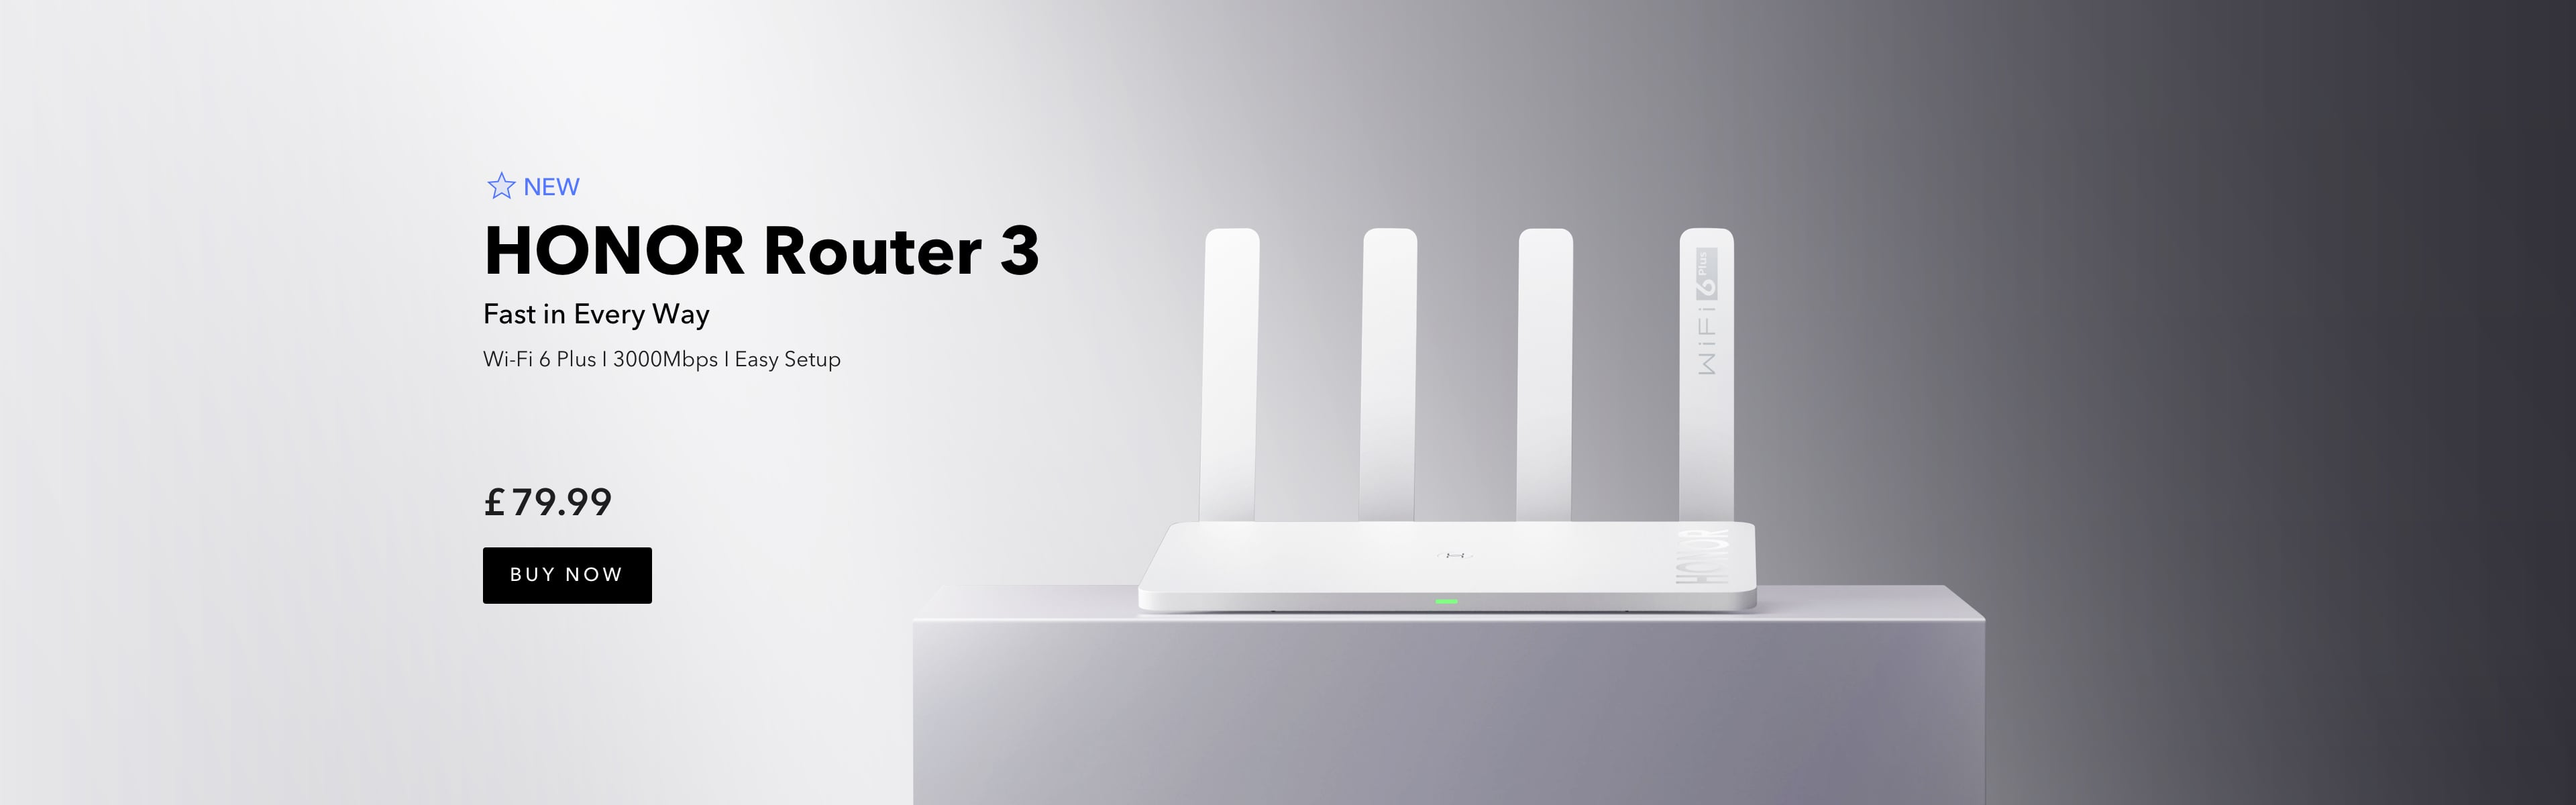 HONOR Router